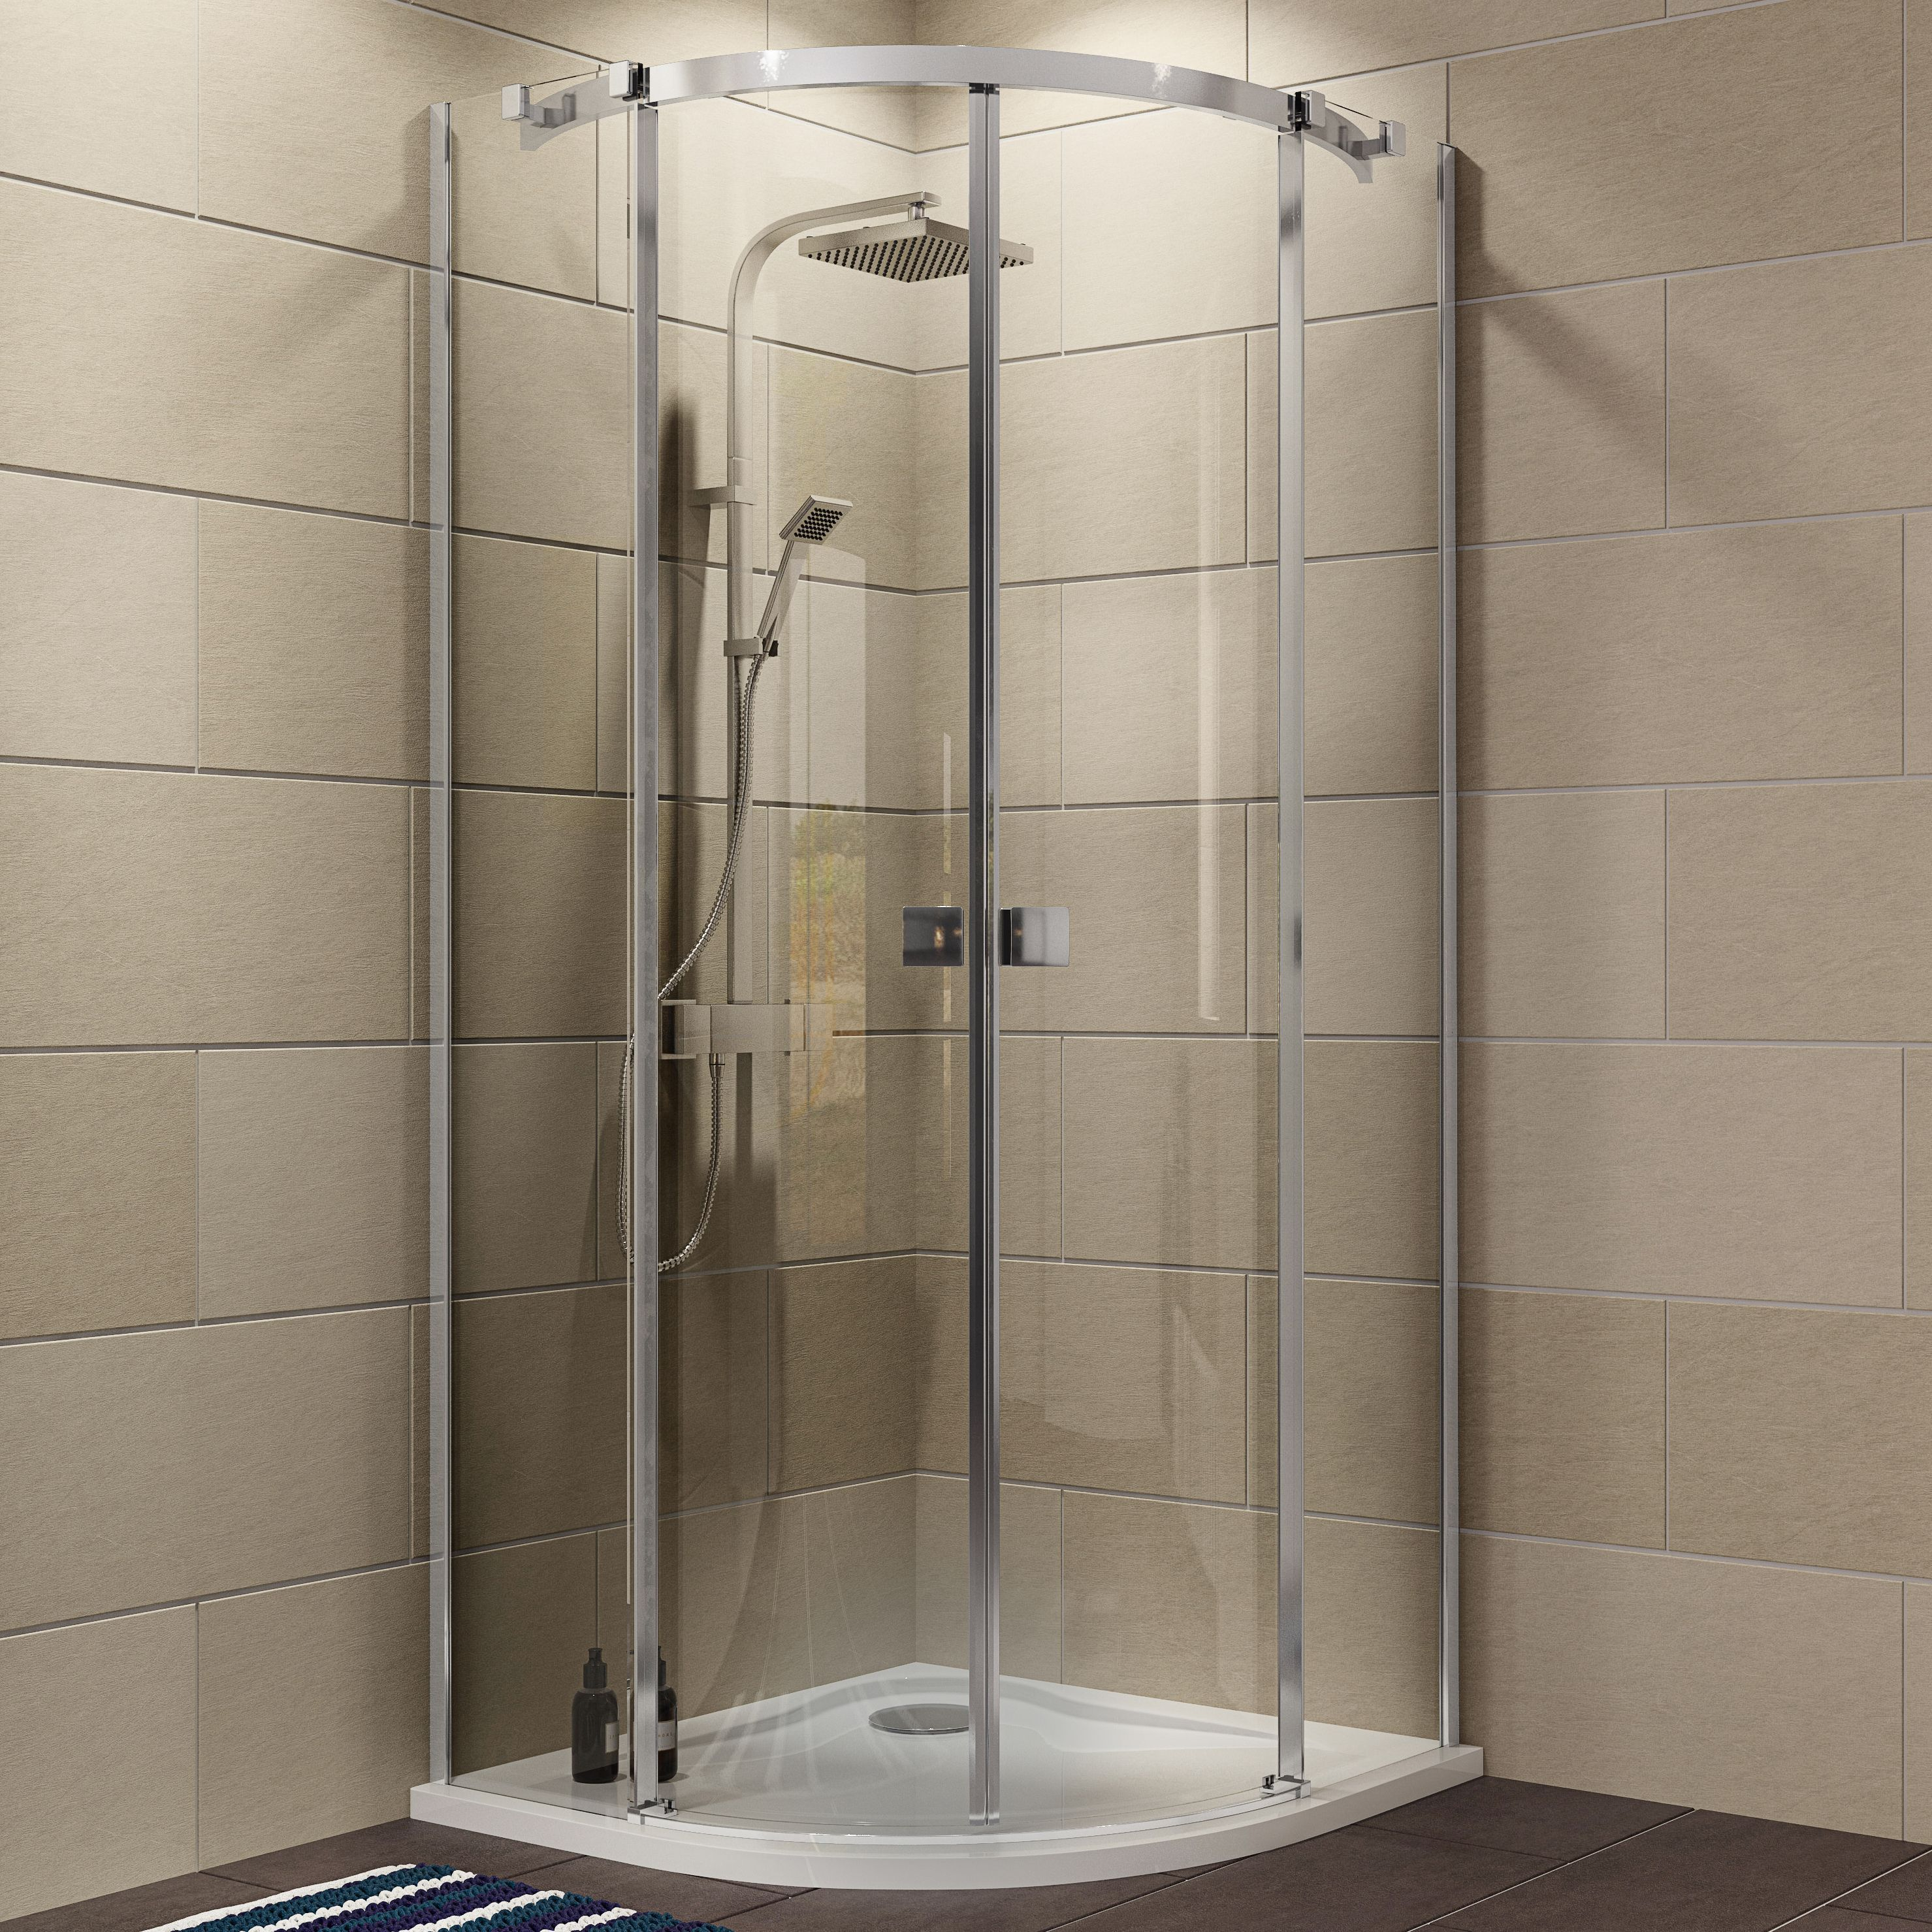 Cooke & Lewis Luxuriant Quadrant Shower Enclosure With Double Sliding Doors (w)900mm (d)900mm